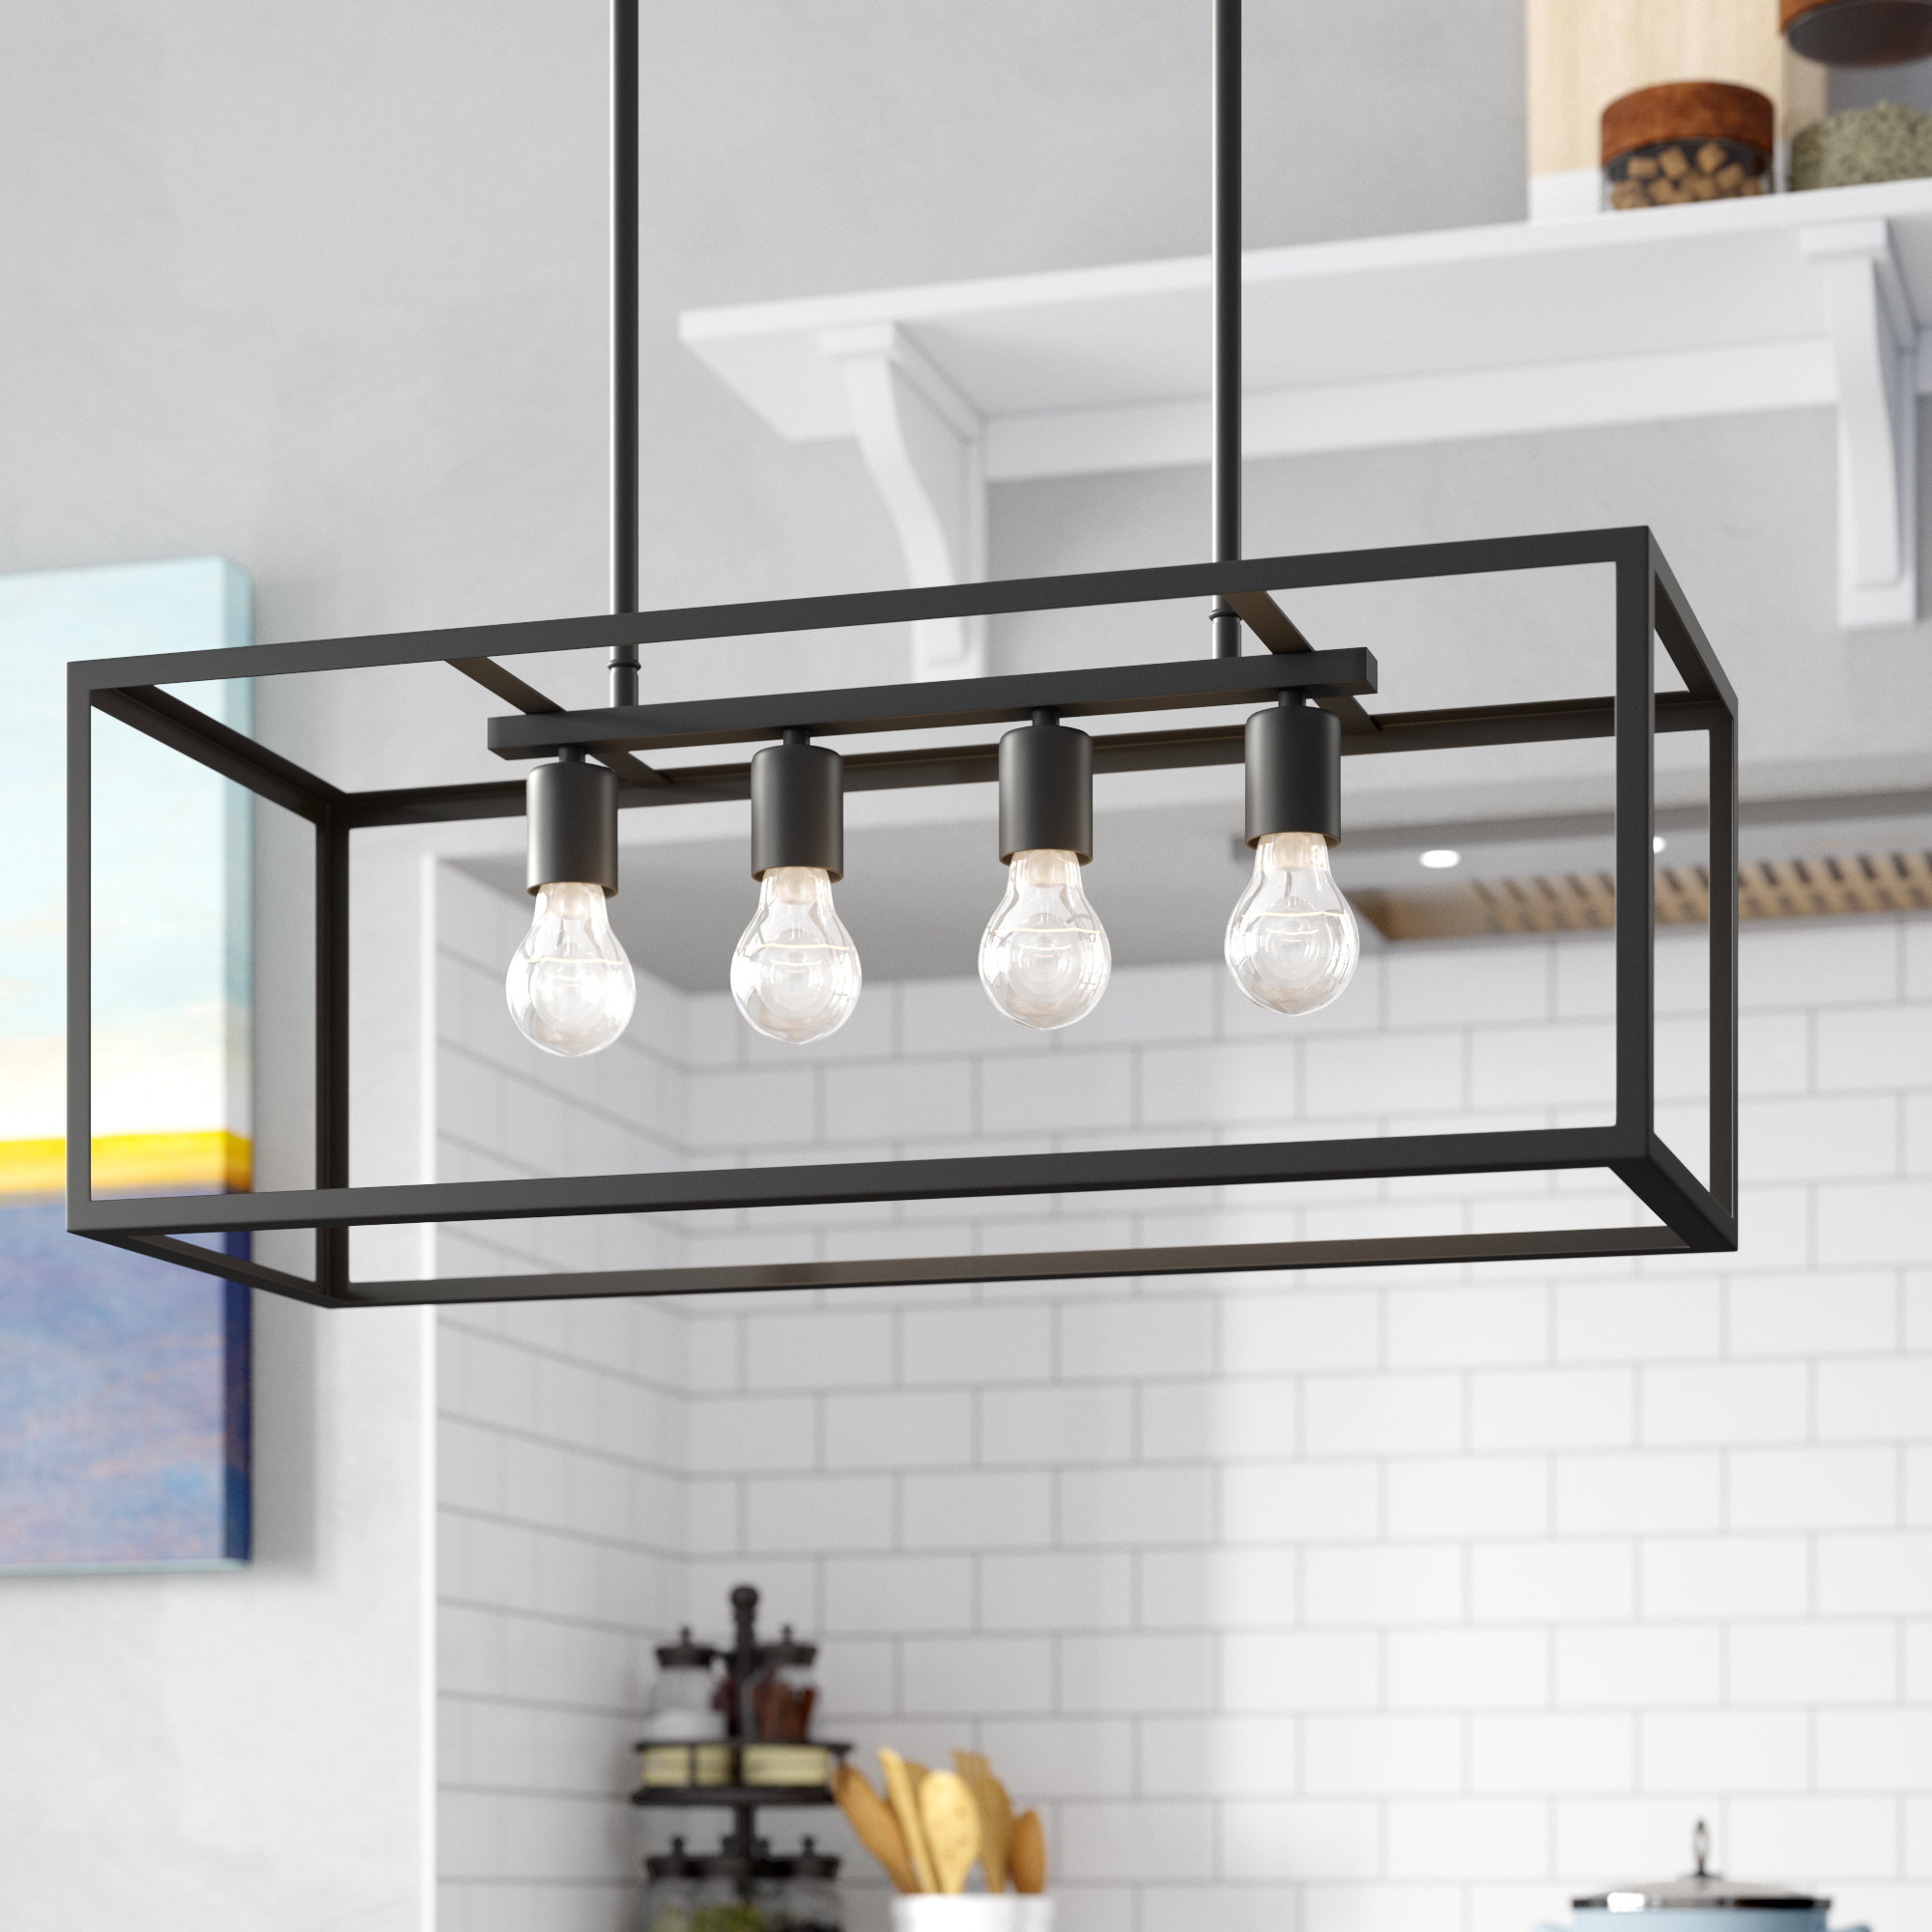 Sousa 4 Light Kitchen Island Linear Pendants Pertaining To Trendy Ratner 4 Light Kitchen Island Linear Pendant (Gallery 2 of 20)